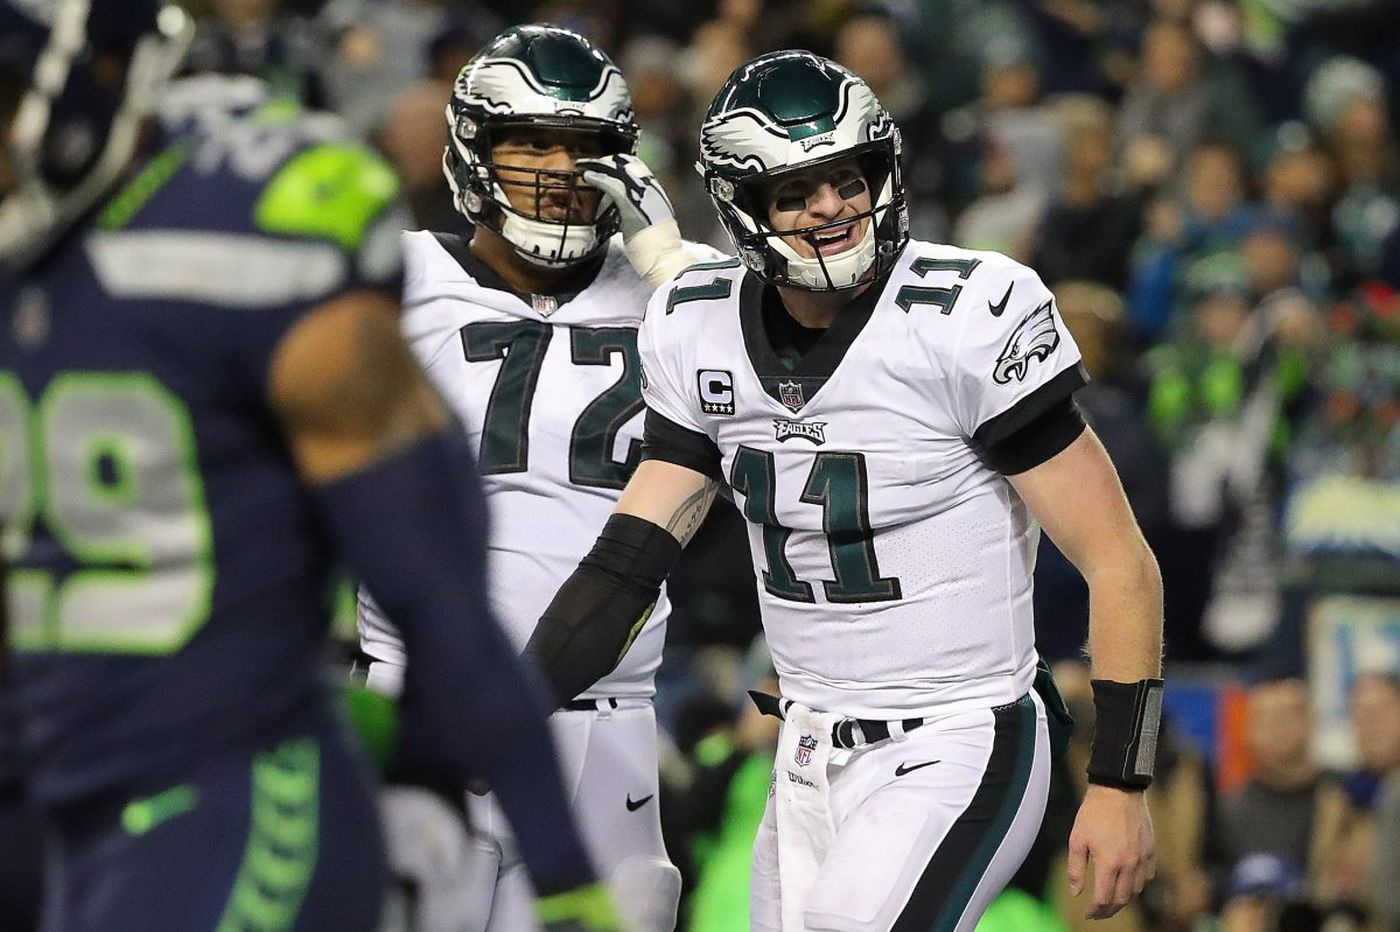 Grading the Eagles' loss to the Seahawks | Paul Domowitch